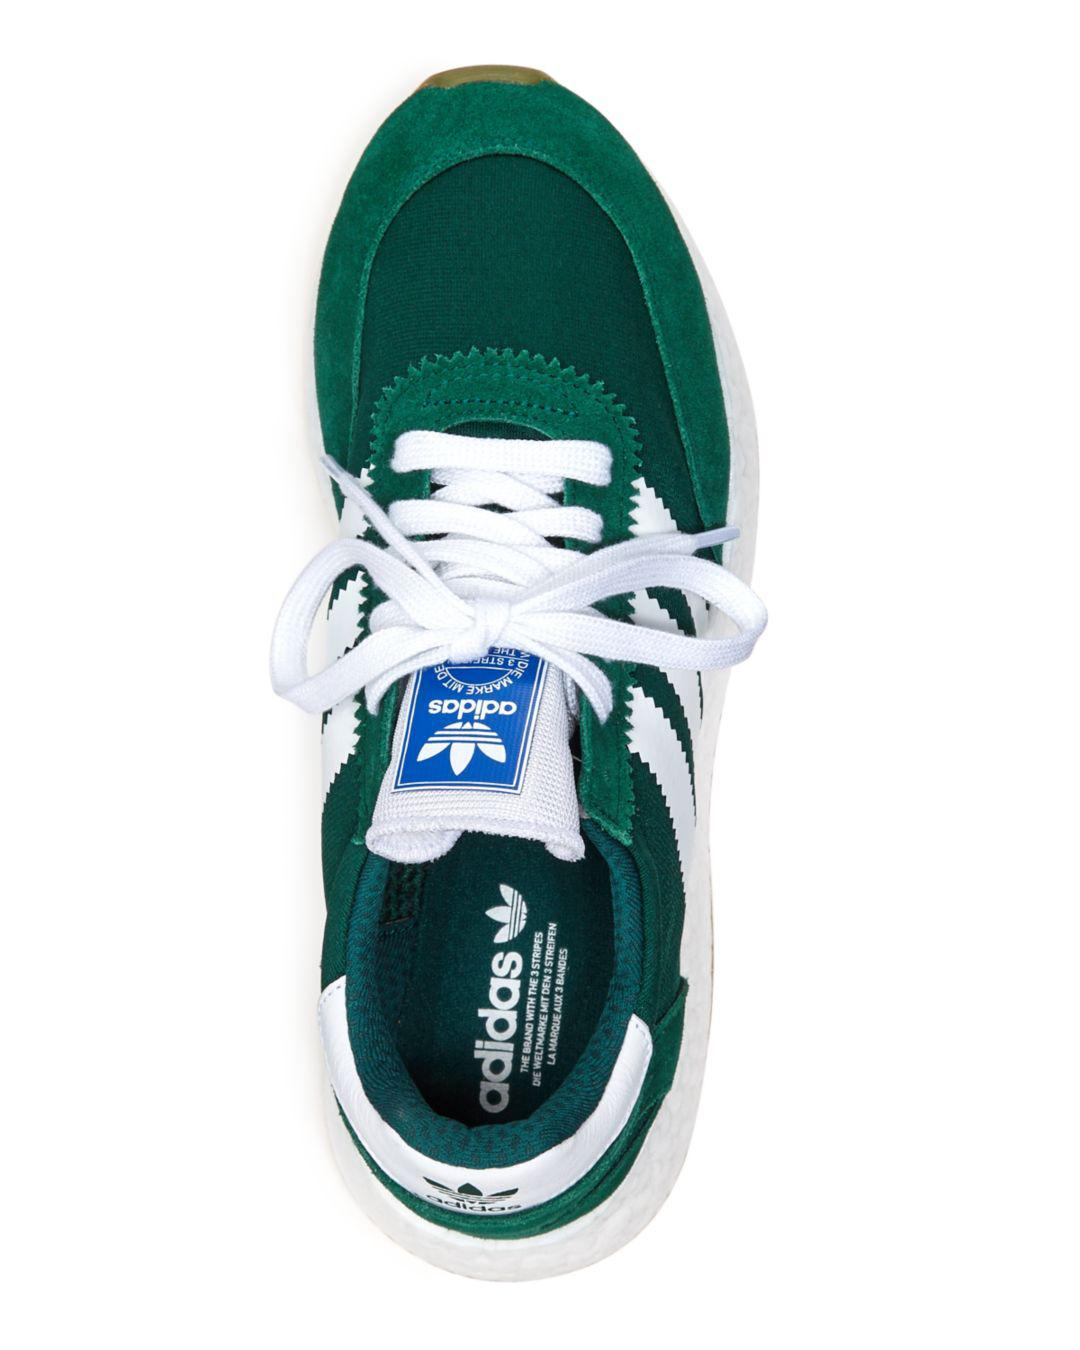 save off 385fa 285ed adidas Women s I-5923 Low-top Sneakers in Green - Lyst